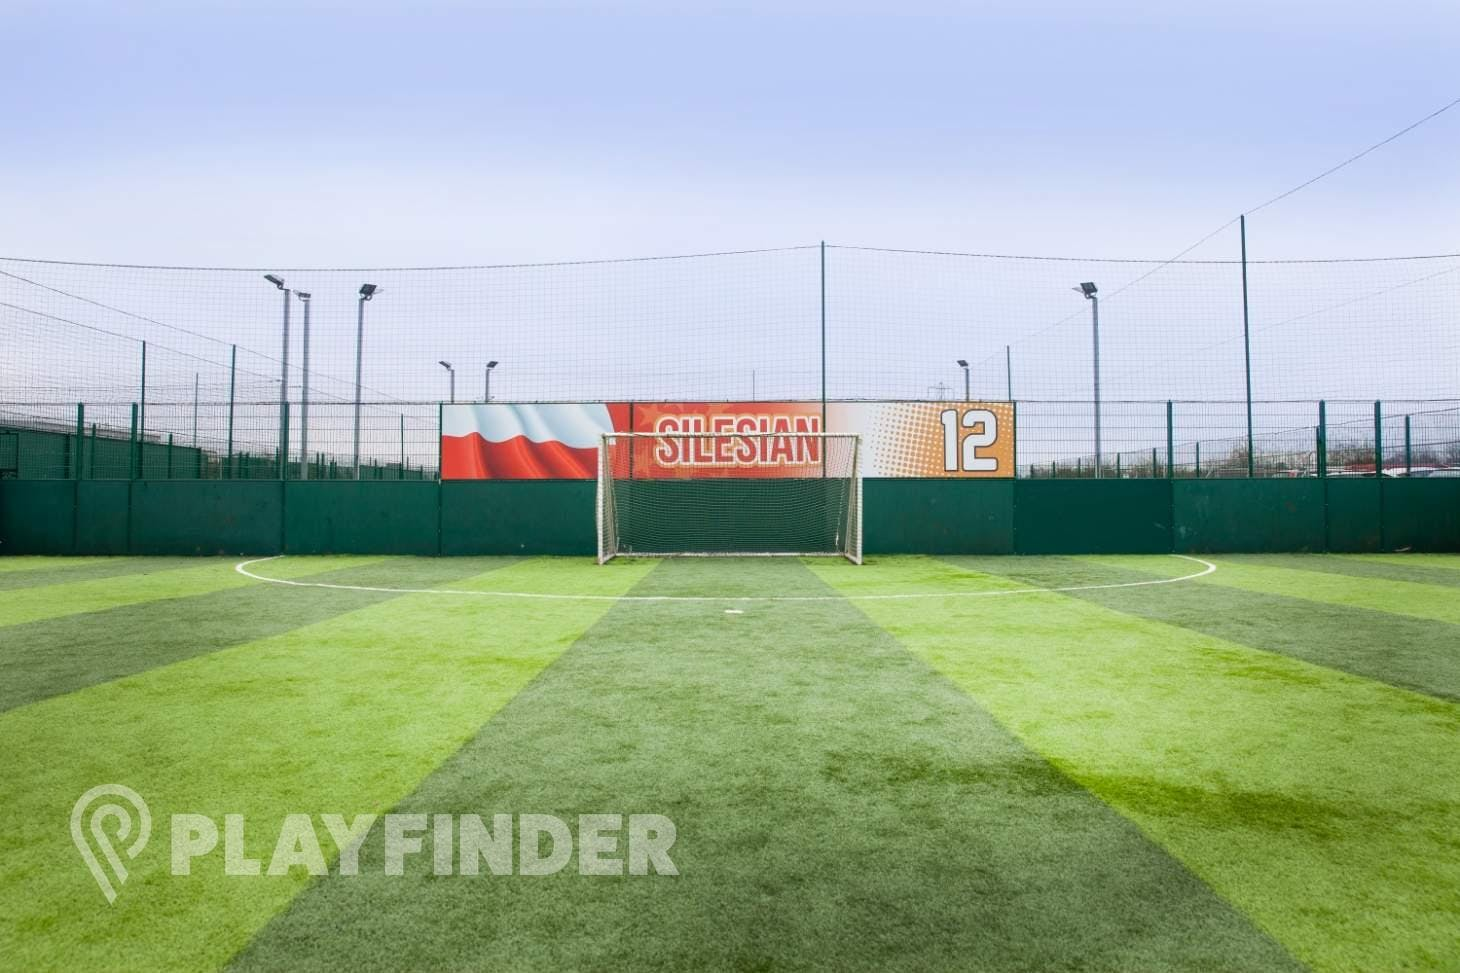 Goals Leeds 7 a side | 3G Astroturf football pitch